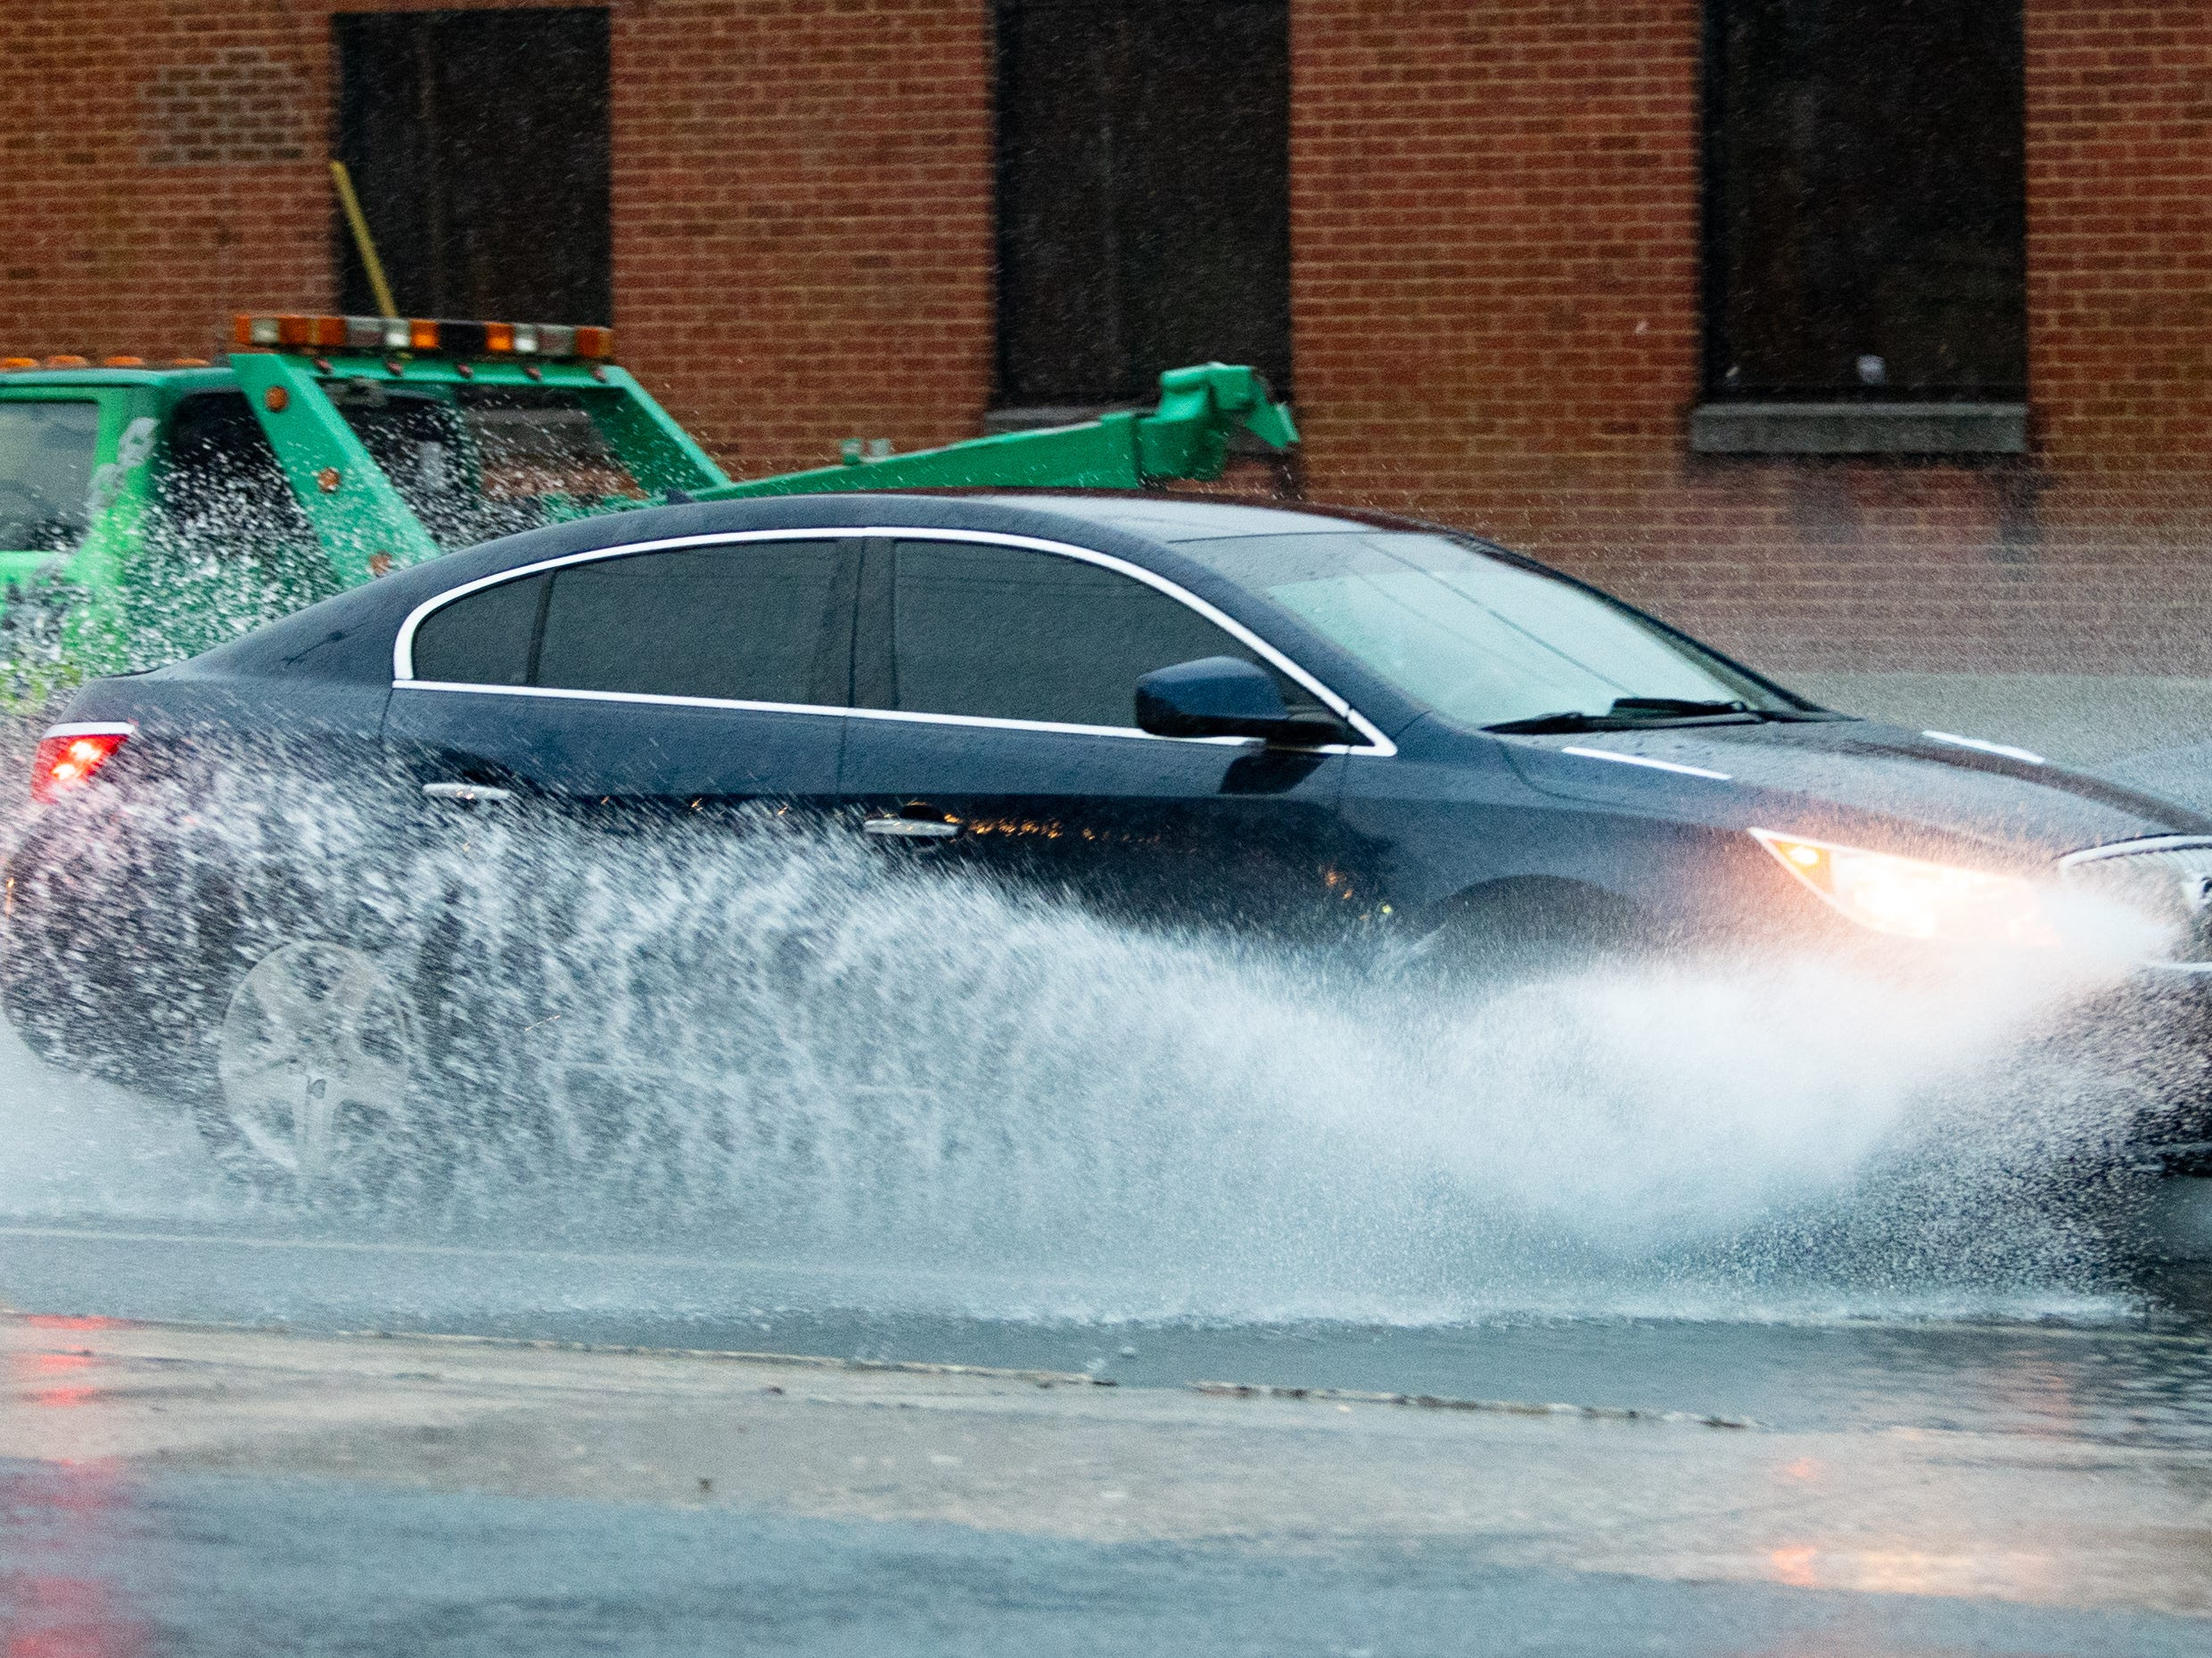 Cars spread water everywhere as they navigated the wet roads on Thursday. Rain continued through the night into Friday, forcing the closure of several flooded roads.